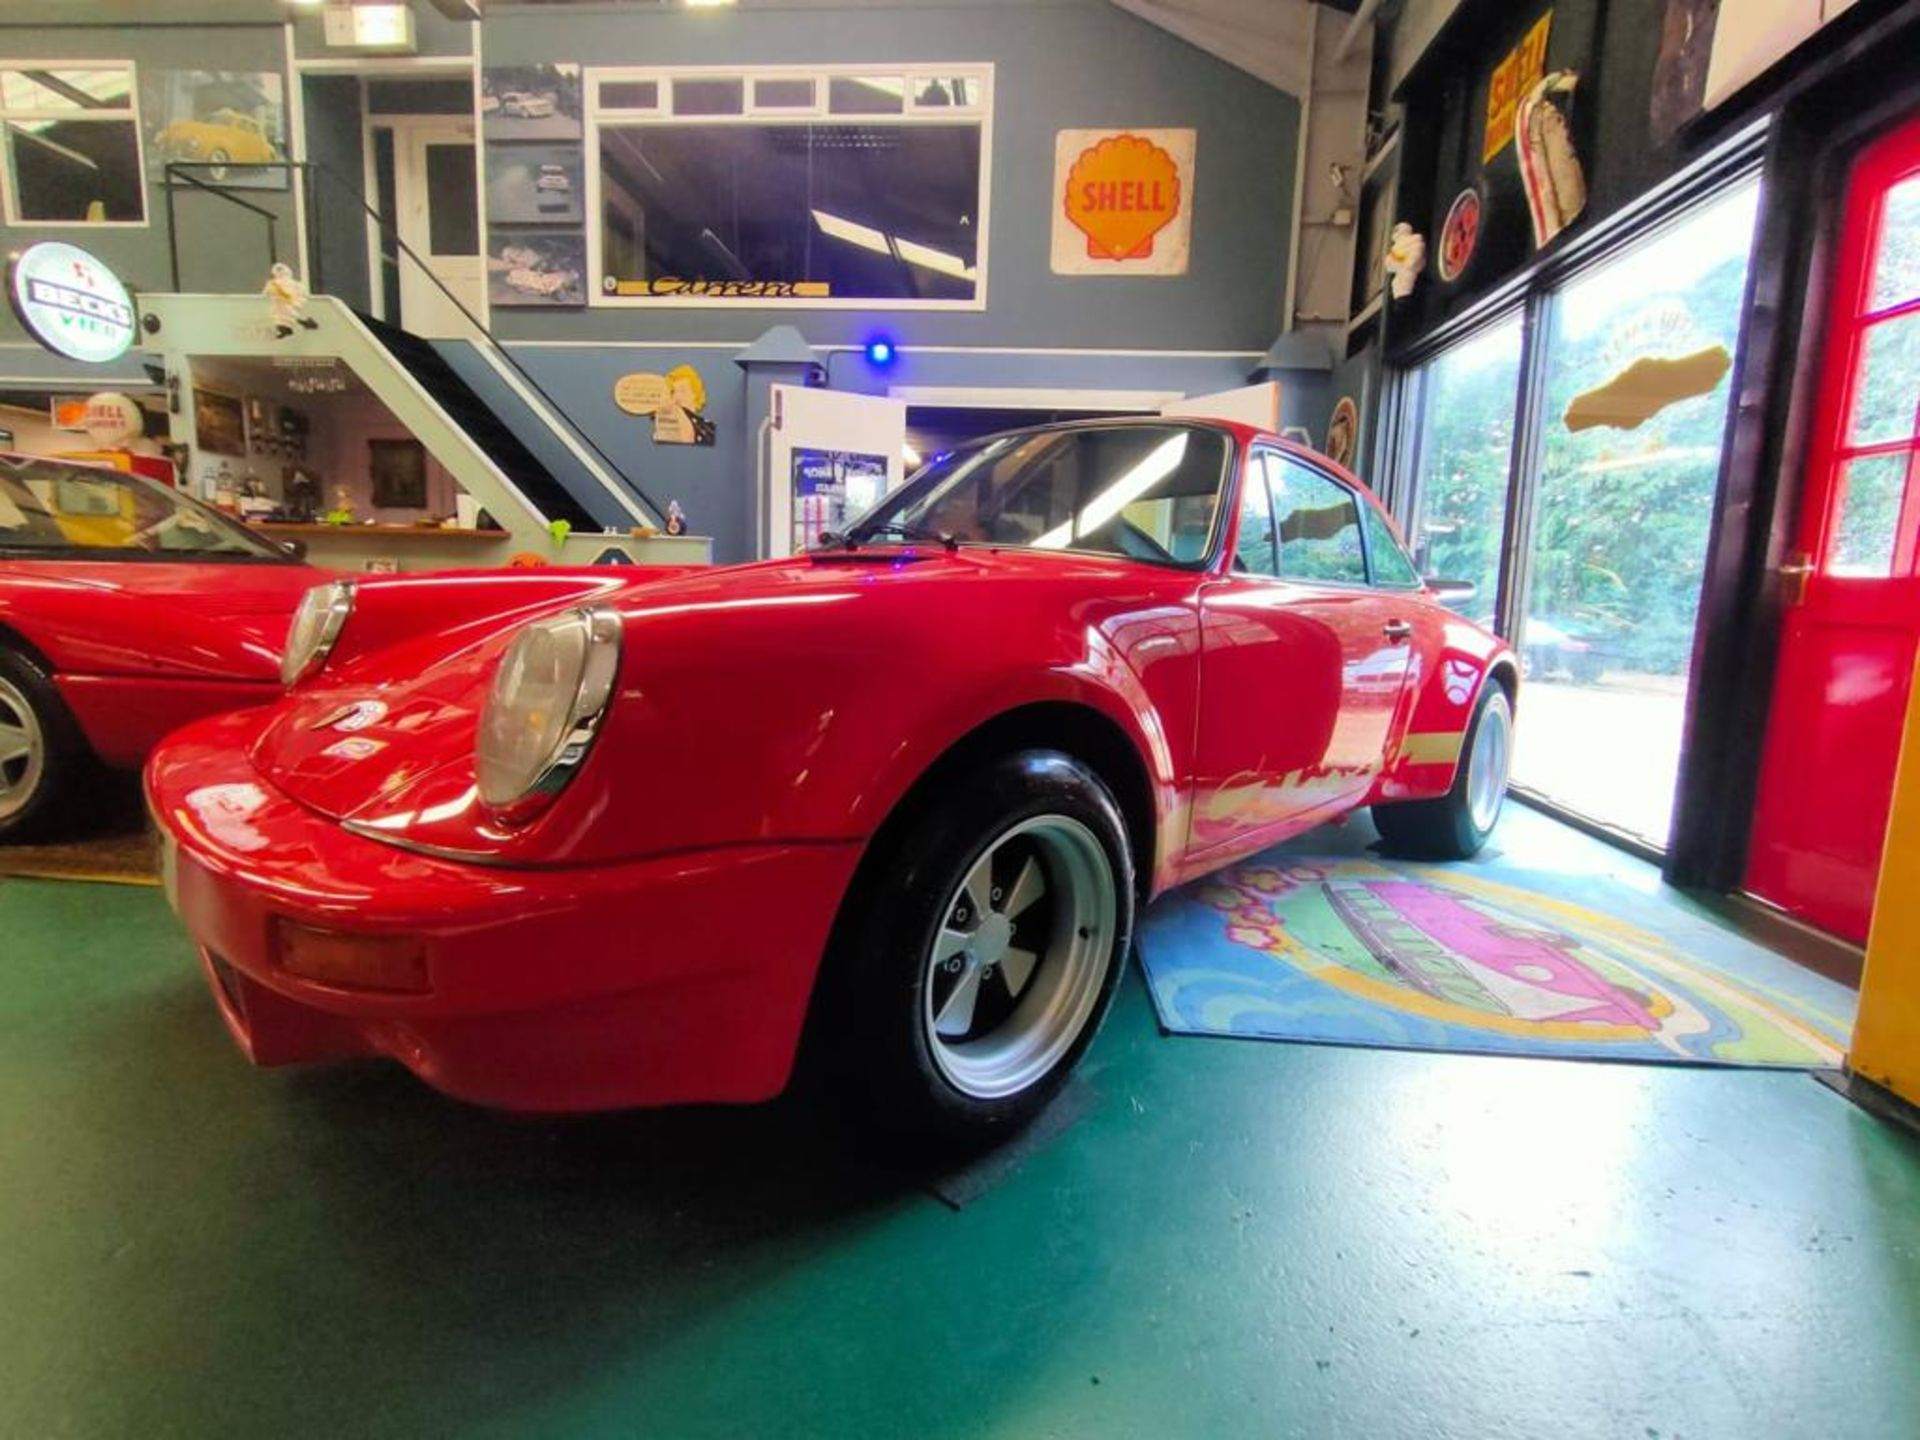 1980 Porsche 911 sc sport but has been fully rebuilt to be identical to a 1974 911 rsr *NO VAT* - Image 2 of 12